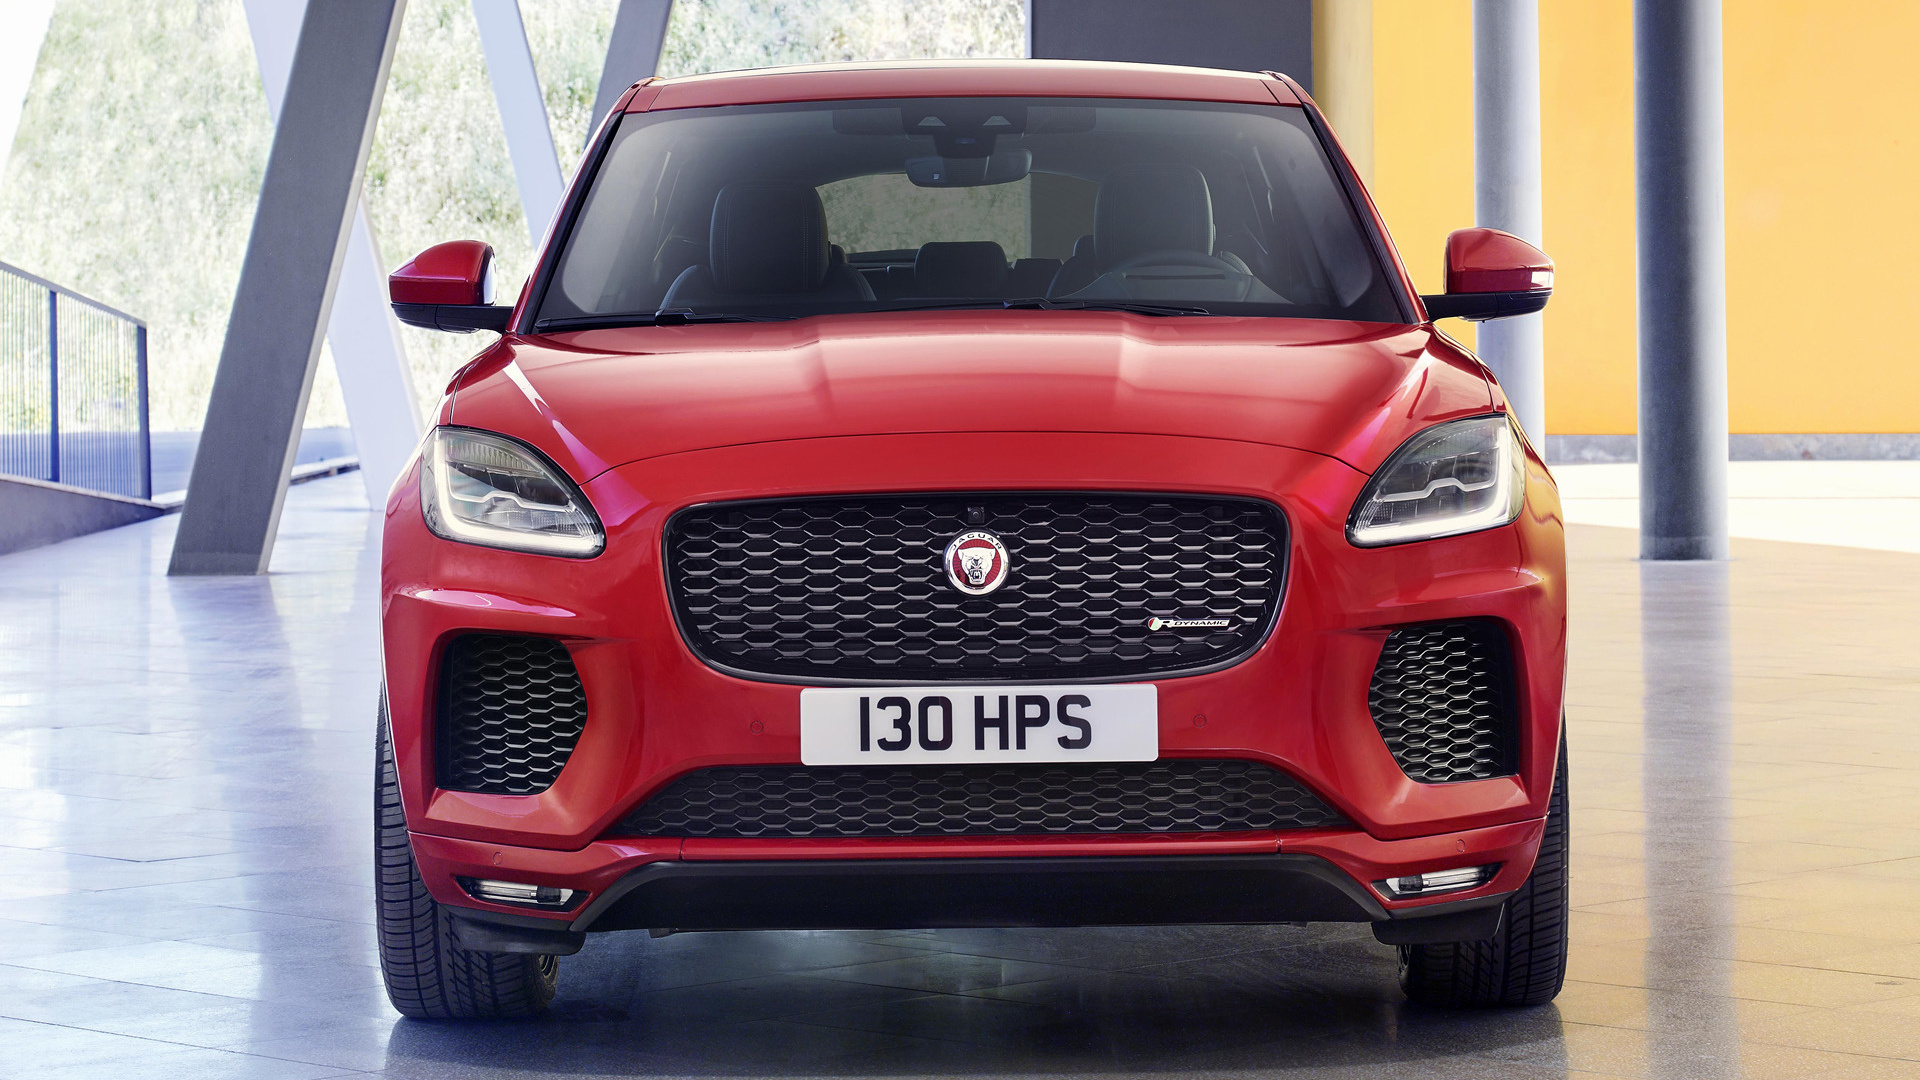 2017 Jaguar E-Pace R-Dynamic - Wallpapers and HD Images ...